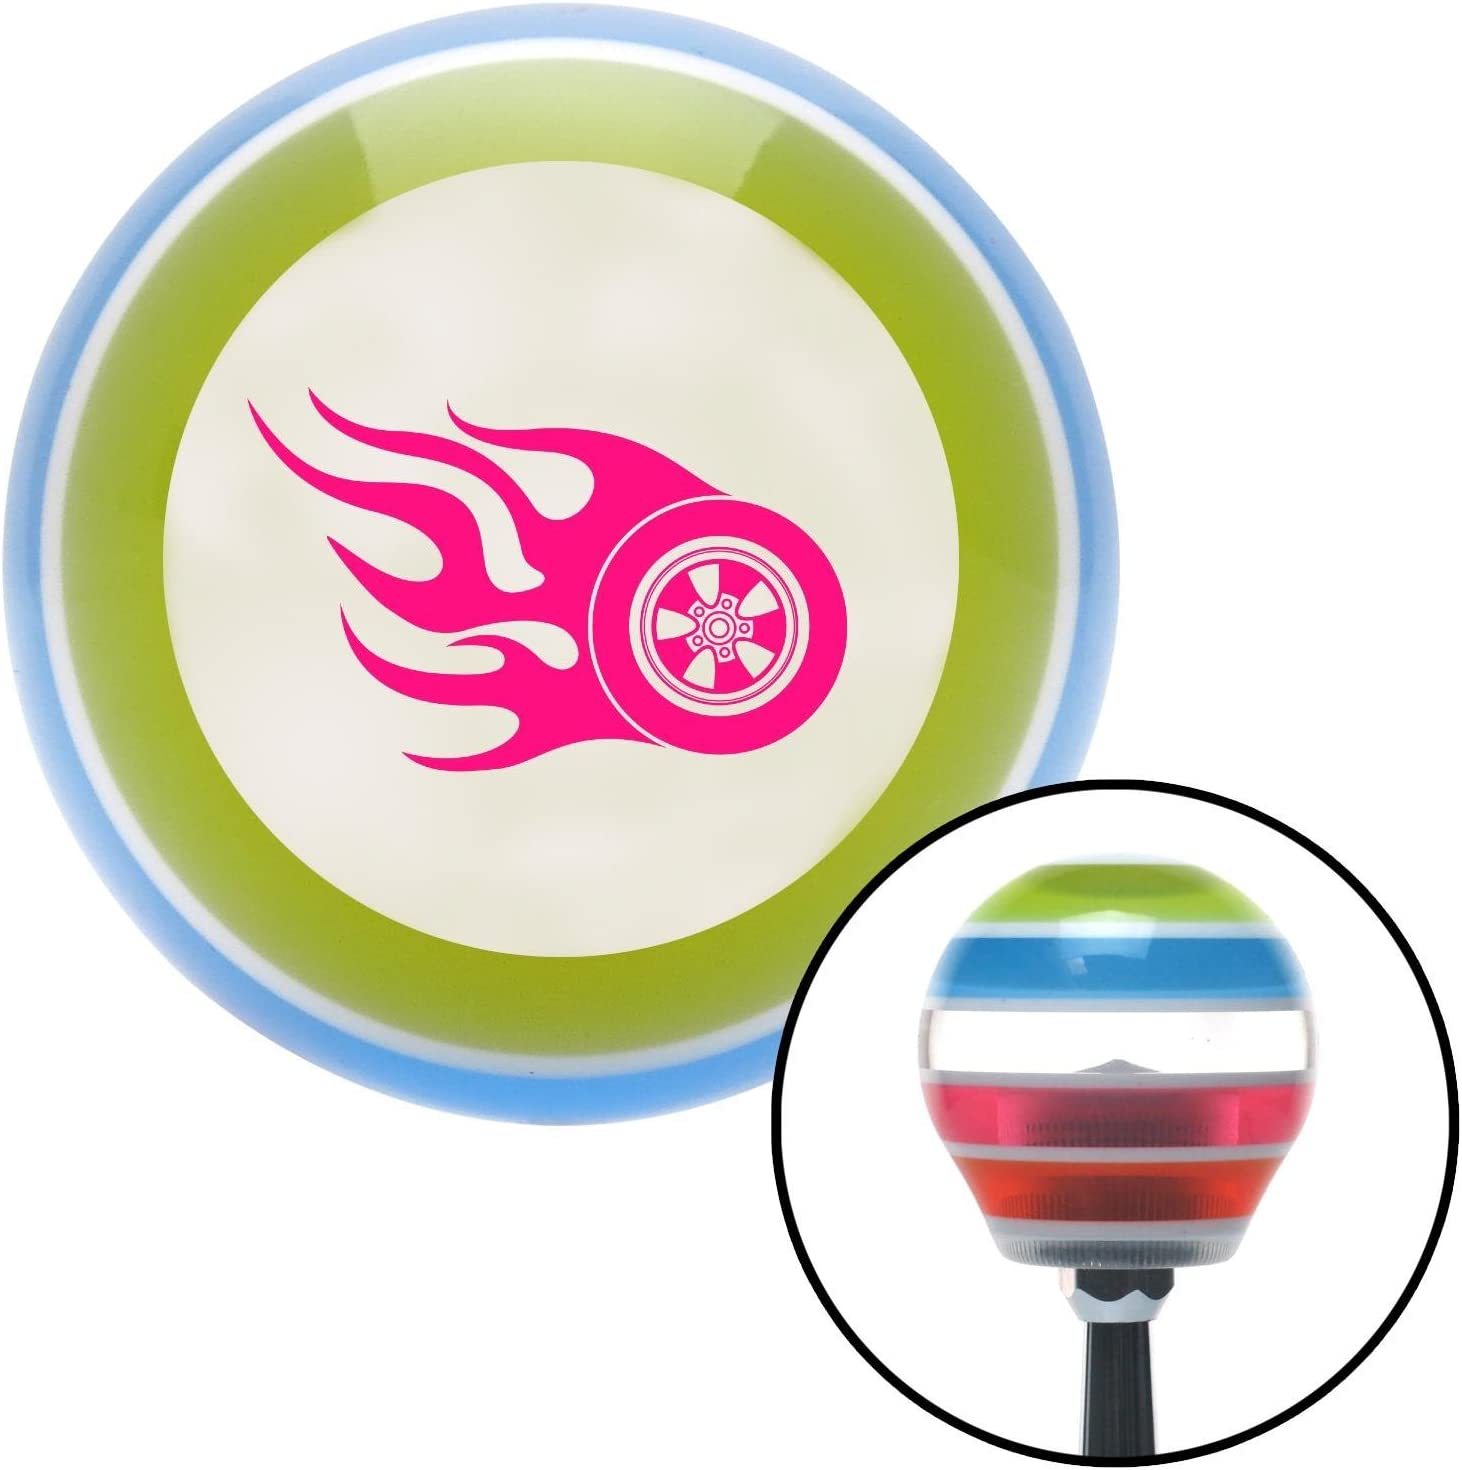 American Shifter 131965 Stripe Shift Knob with M16 x 1.5 Insert Pink Flaming Wheel